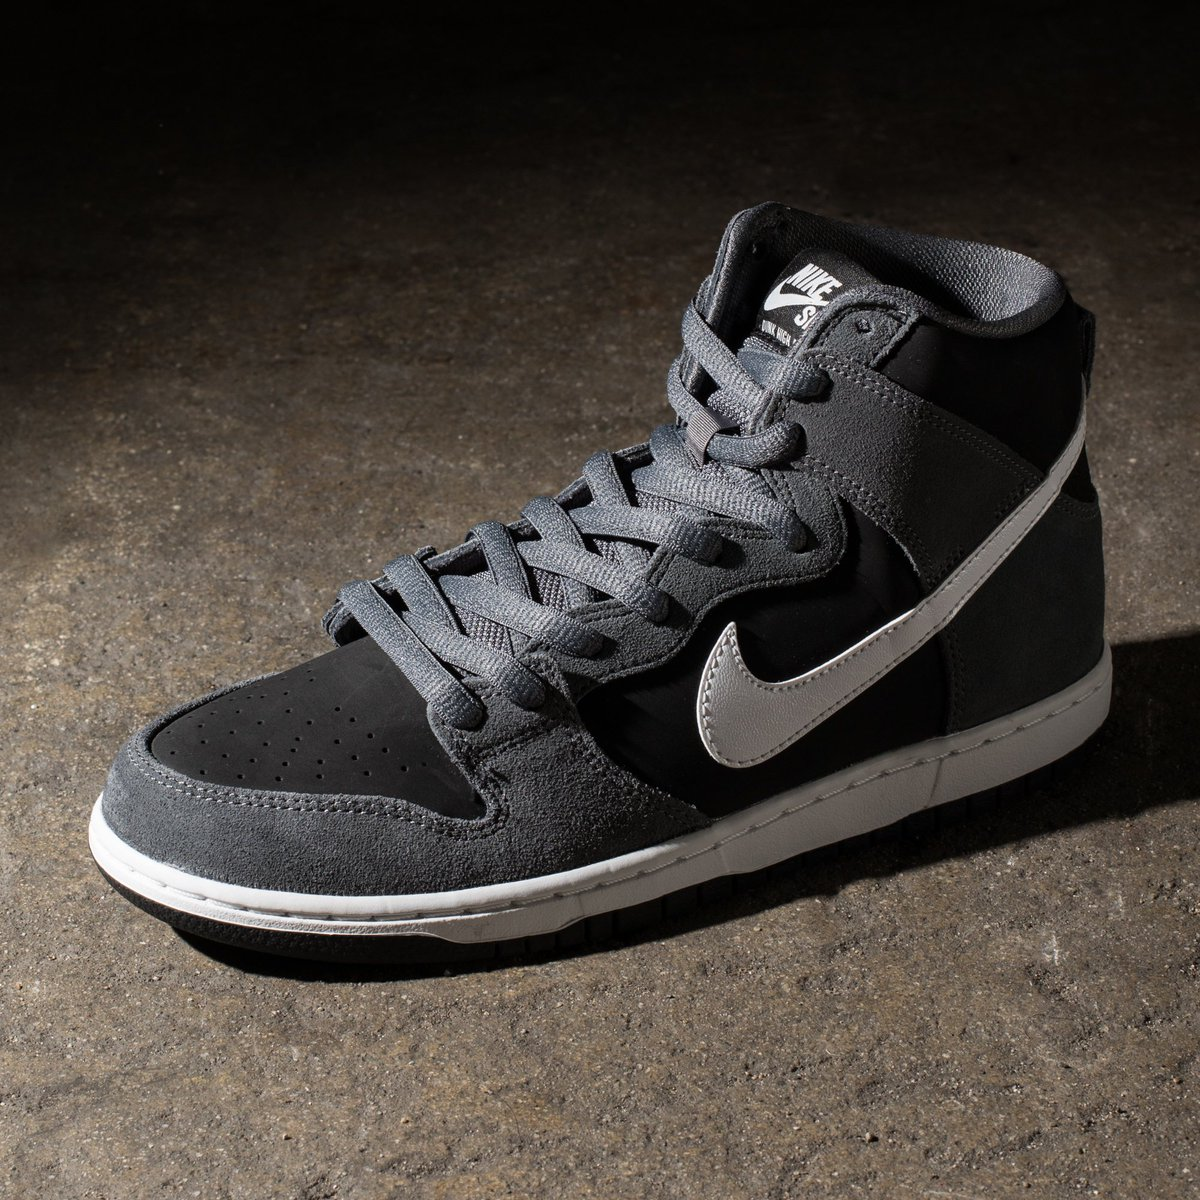 04a1cd780d2 ... uk undefeated on twitter nike sb dunk hi pro dark grey available now at  select undefeated greece nike sb dunk low summitwhite white wolfgrey ...